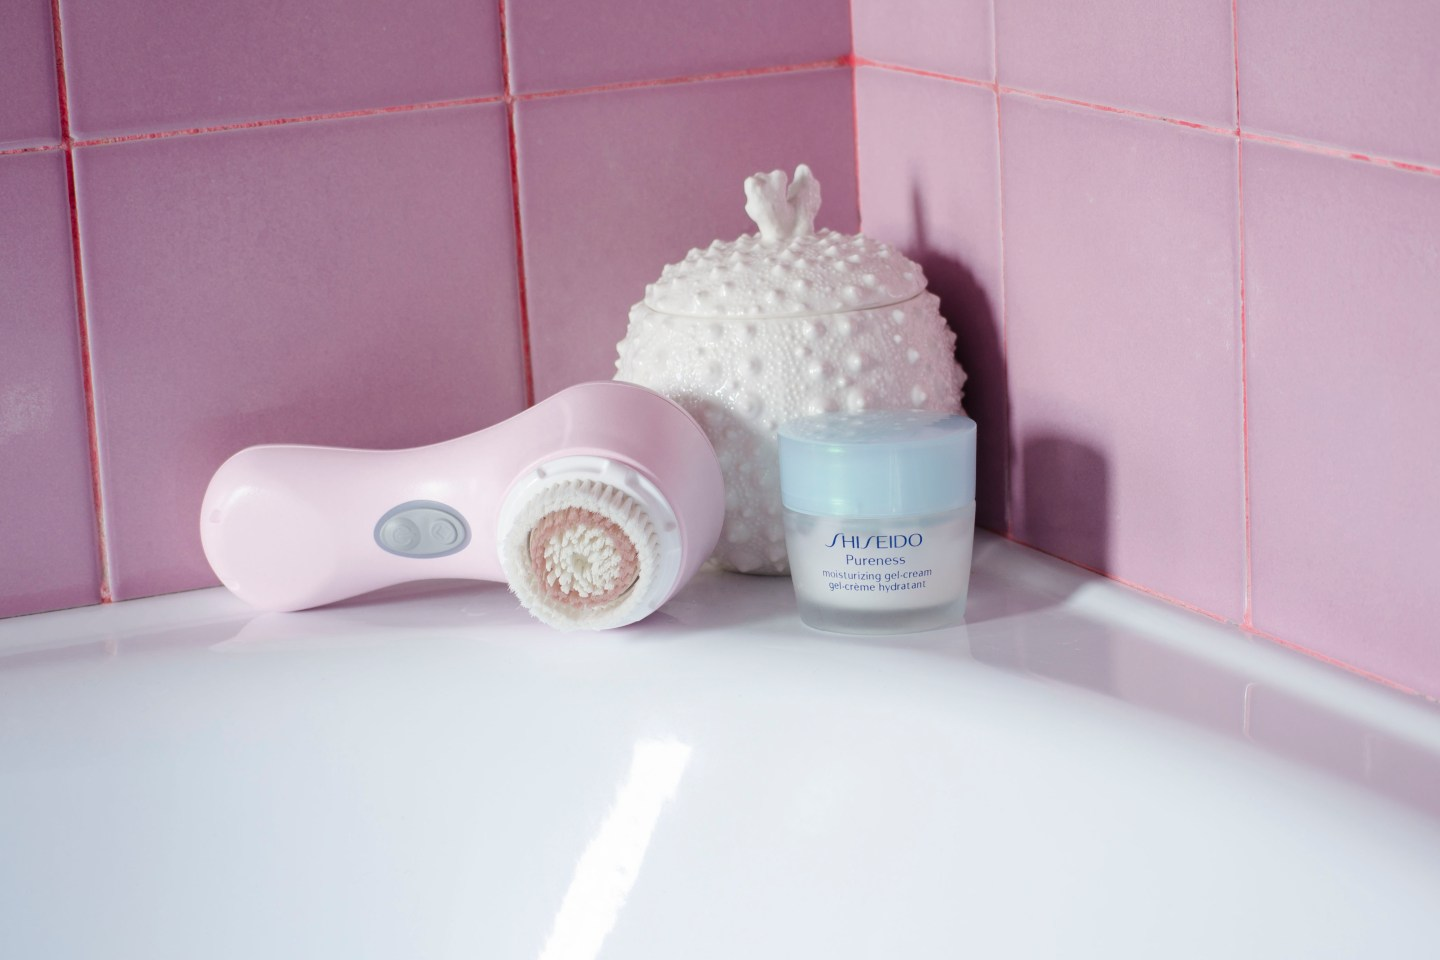 Shiseido_Pureness_Lilyscolours_4